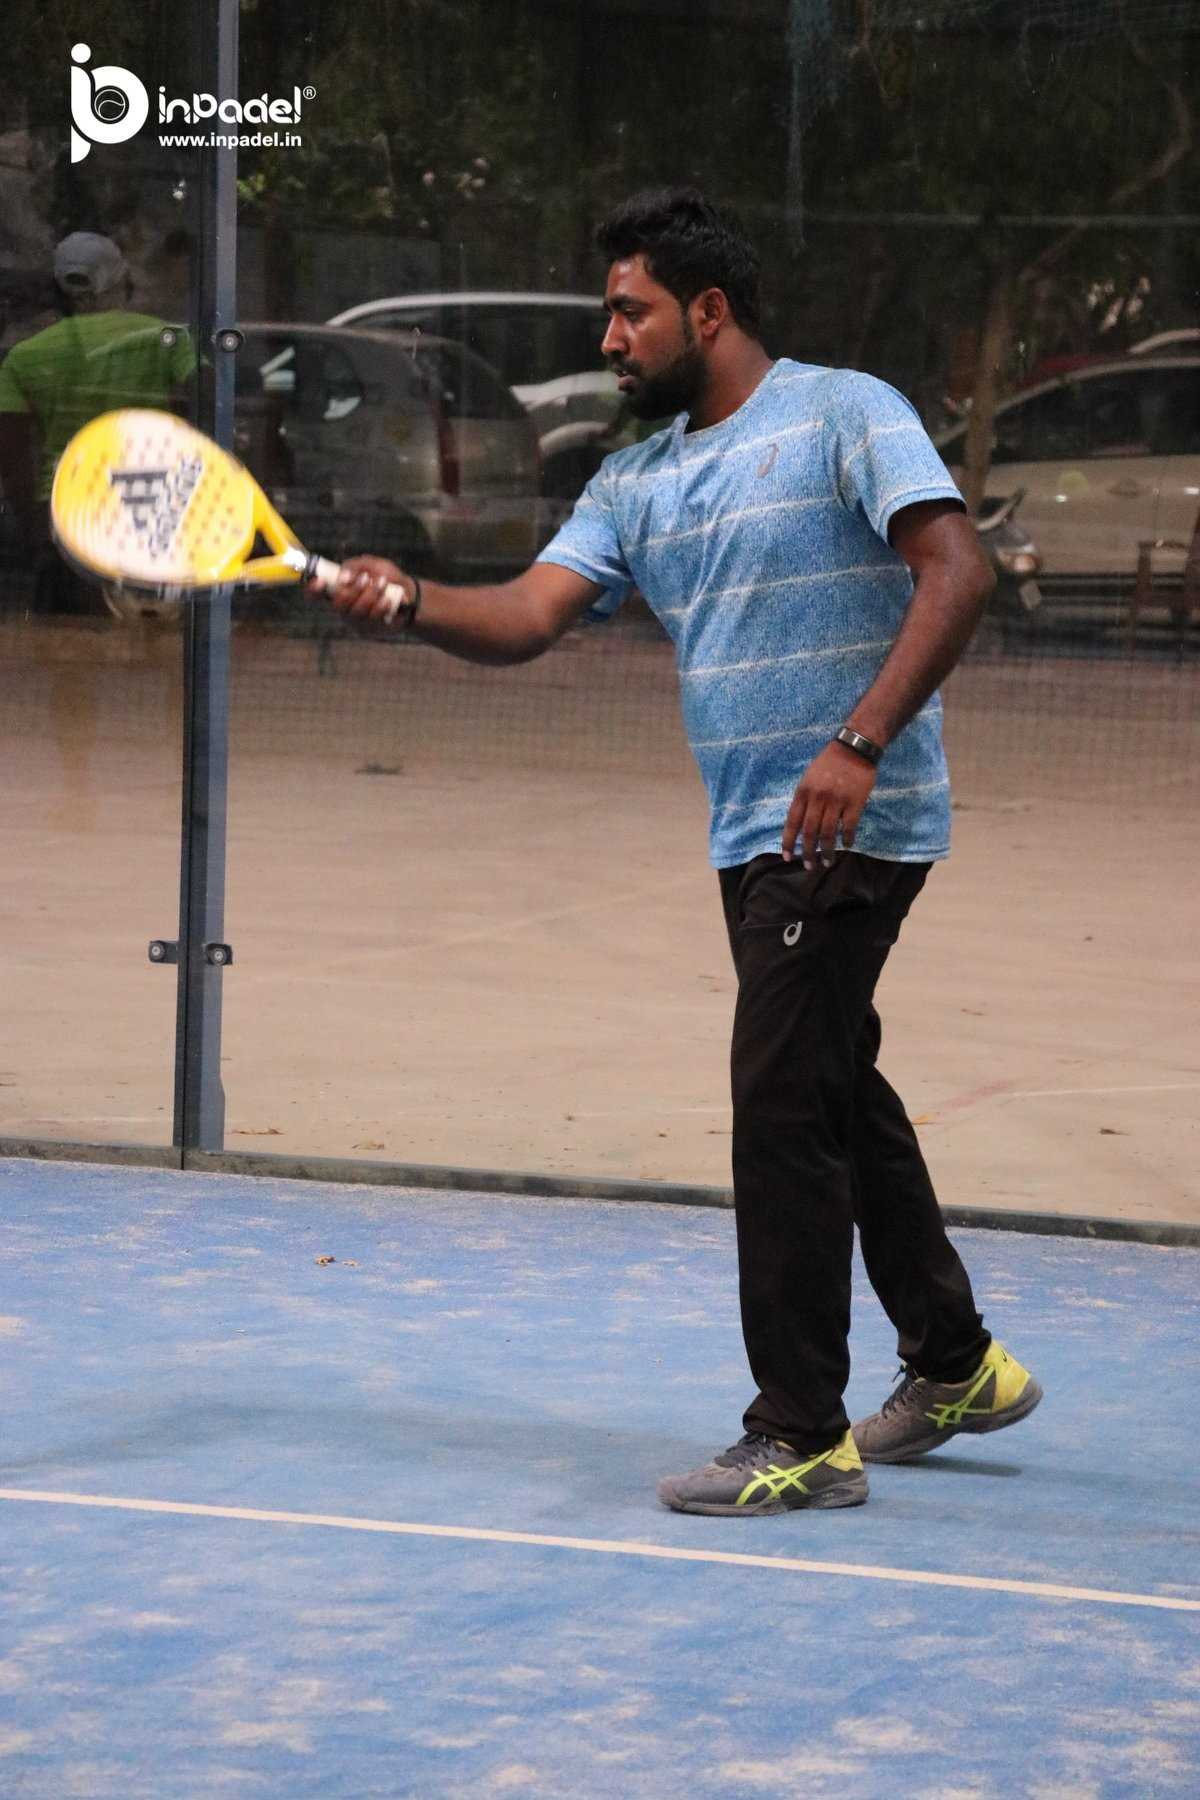 InPadel 1Yr Celebration of Padel in INDIA - Padel - Padel India (116)